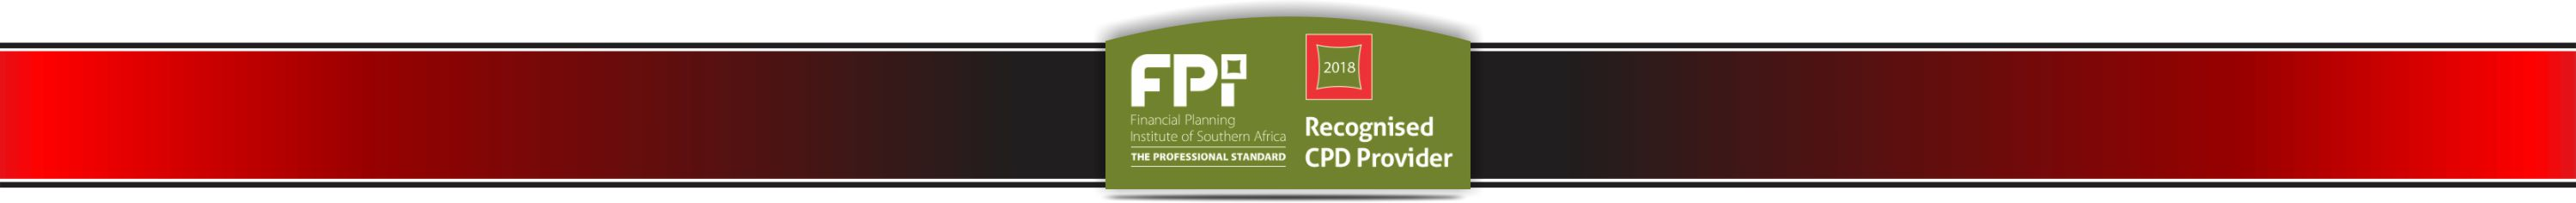 Recognised CDP provider banner red